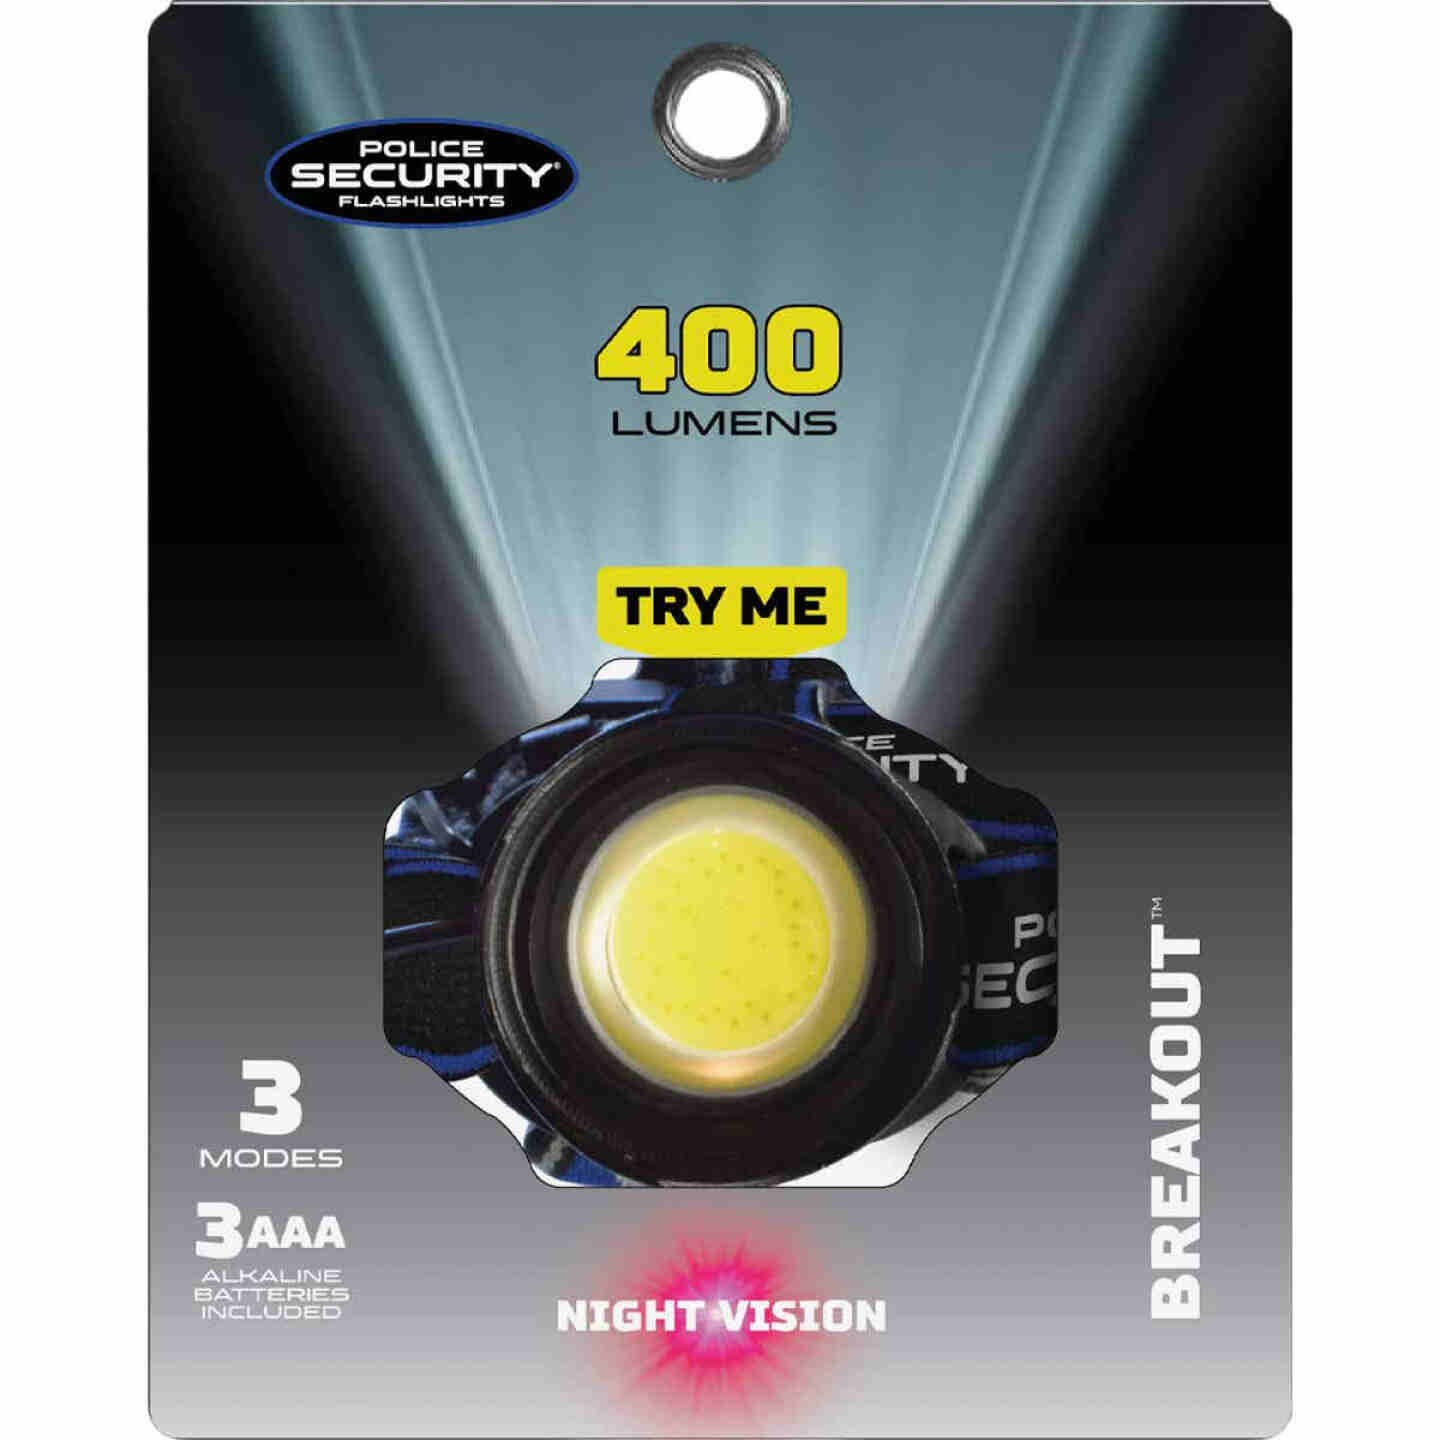 Police Security Breakout 400 Lm. 3 AAA COB LED Headlamp Image 2